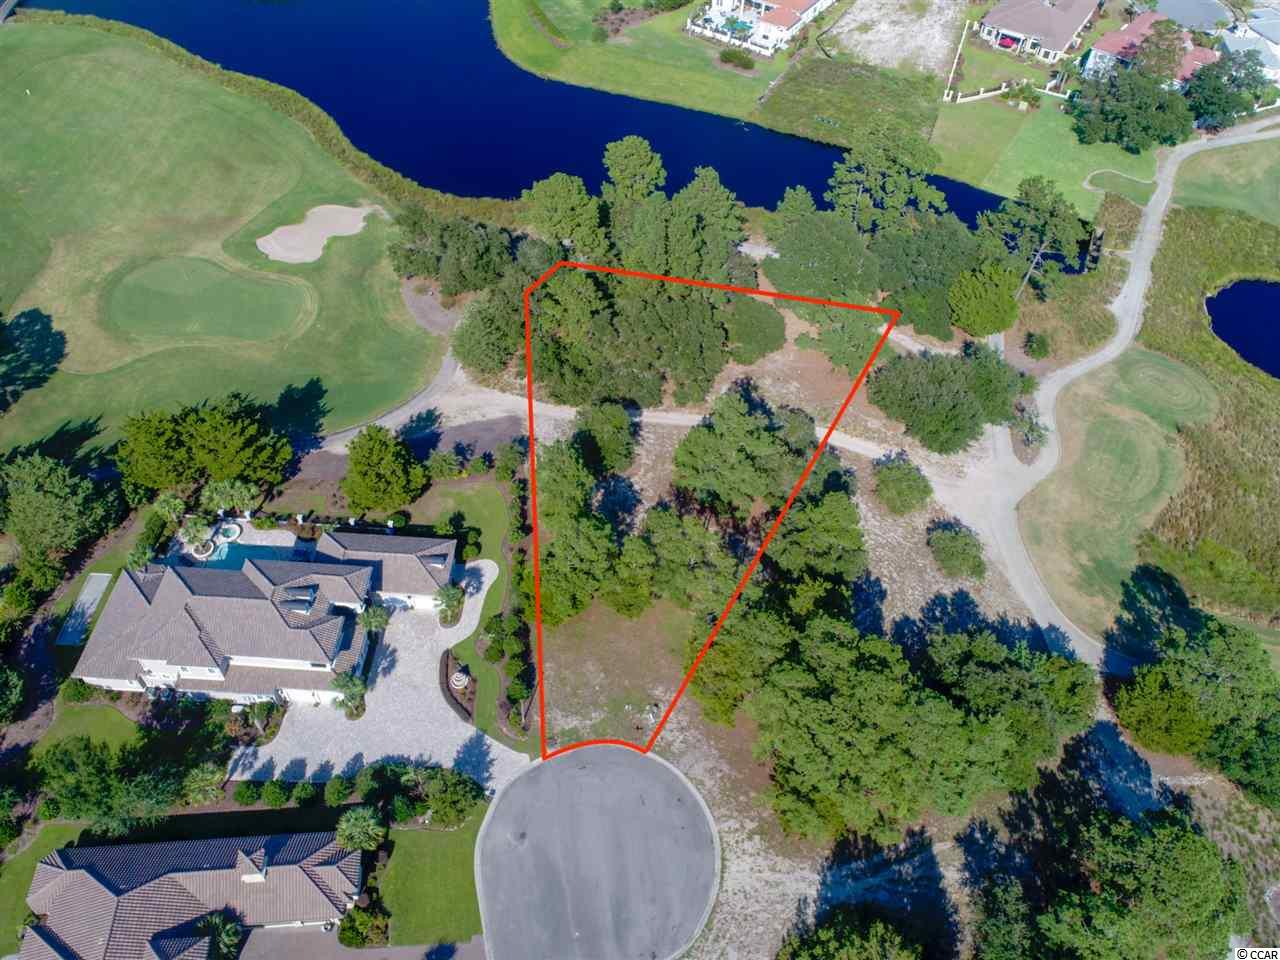 Imagine building your custom Mediterranean dream home on this near 3/4 acre lot in the highly exclusive gated community of Palermo at Grande Dunes. This .72 ac lot sits on a quiet cul-de-sac and between two signature holes with gorgeous views of lakes and the ICW. One of the last waterway lots left of this magnificent size. No time-frame to build and choose your own builder, we can also recommend a few. Furnishings are available! This property is located in South Carolina's premier coastal community in Myrtle Beach; Grande Dunes.  Stretching from the Ocean to the Carolina Bays Preserve, this 2200 acre development is amenity-rich and filled with lifestyle opportunities unrivaled in the market.  Owners at Grande Dunes enjoy a 25,000 square foot Ocean Club that boasts exquisite dining, oceanfront pools with food & beverage service, along with meeting rooms and fun activities.  Additionally, the community has two 18-hole golf courses, including the area's only truly private course designed by Nick Price, along with several on-site restaurants, deep water marina, Har-tru tennis facility and miles or biking/walking trails!  Please visit our sales gallery located in Grande Dunes Marketplace next to Lowes Foods to learn more about this amazing community you can call home.